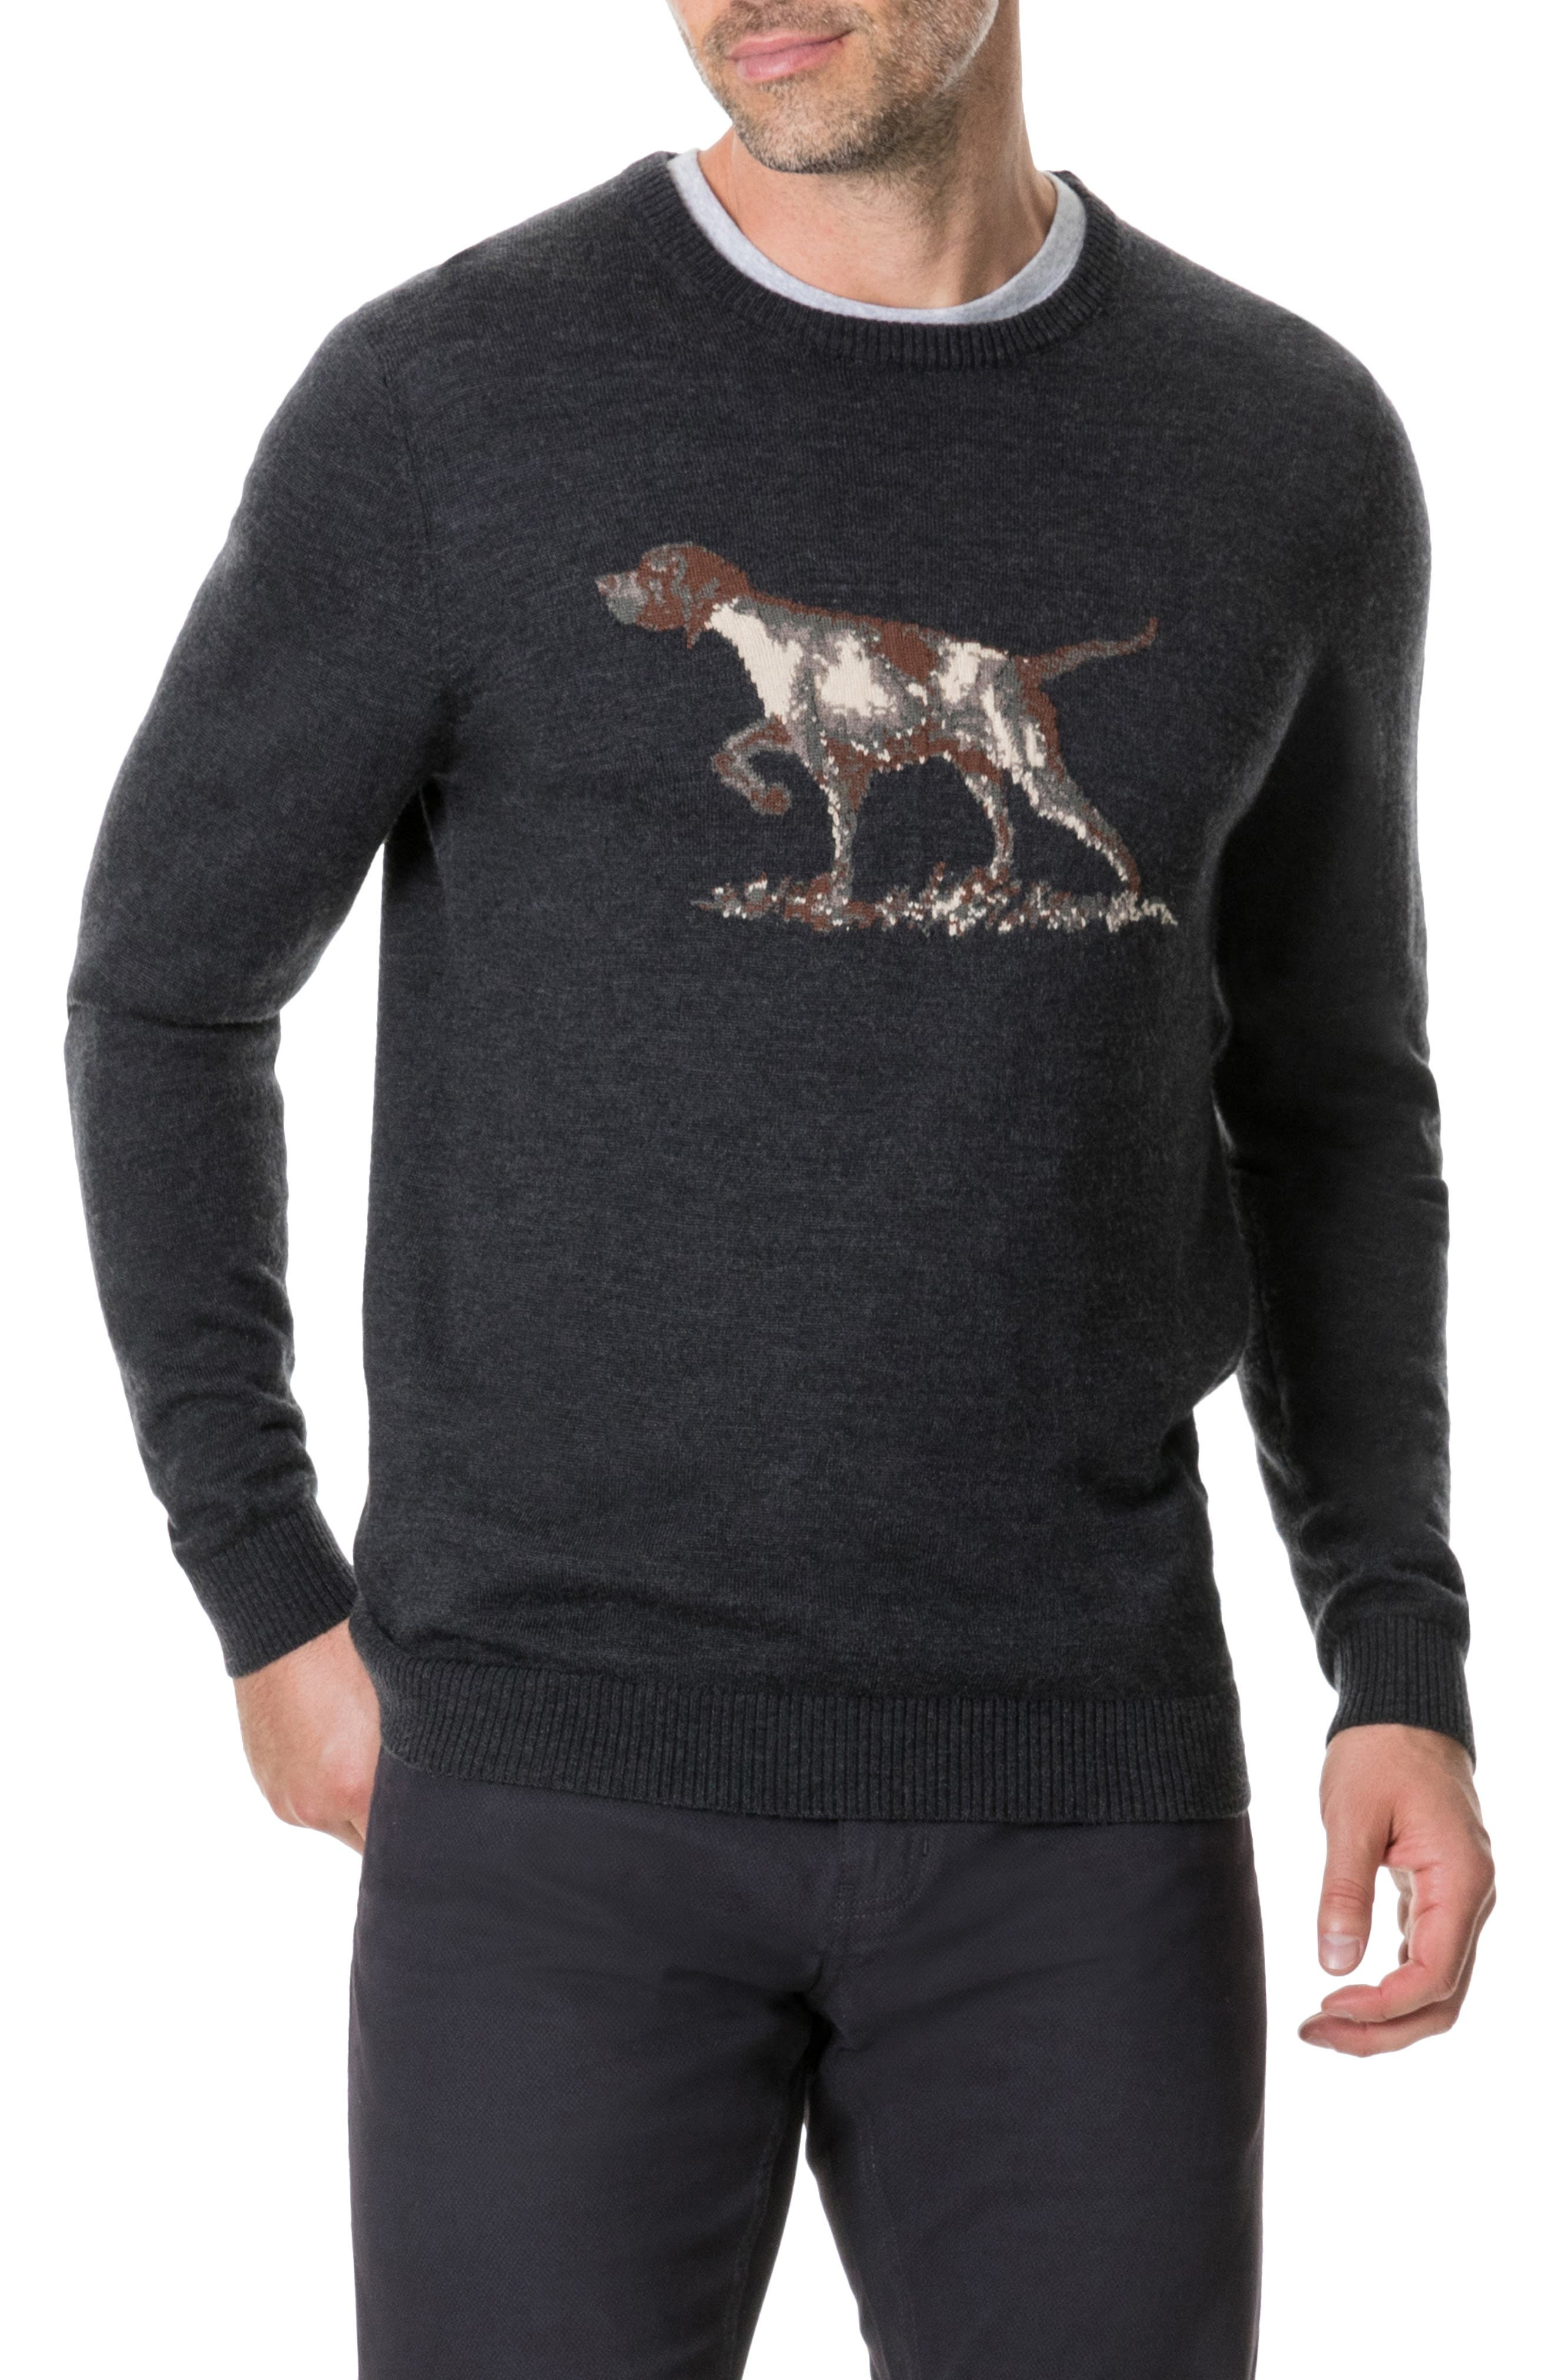 Calderwell Pointer Intarsia Knit Wool Sweater,                             Main thumbnail 1, color,                             CHARCOAL